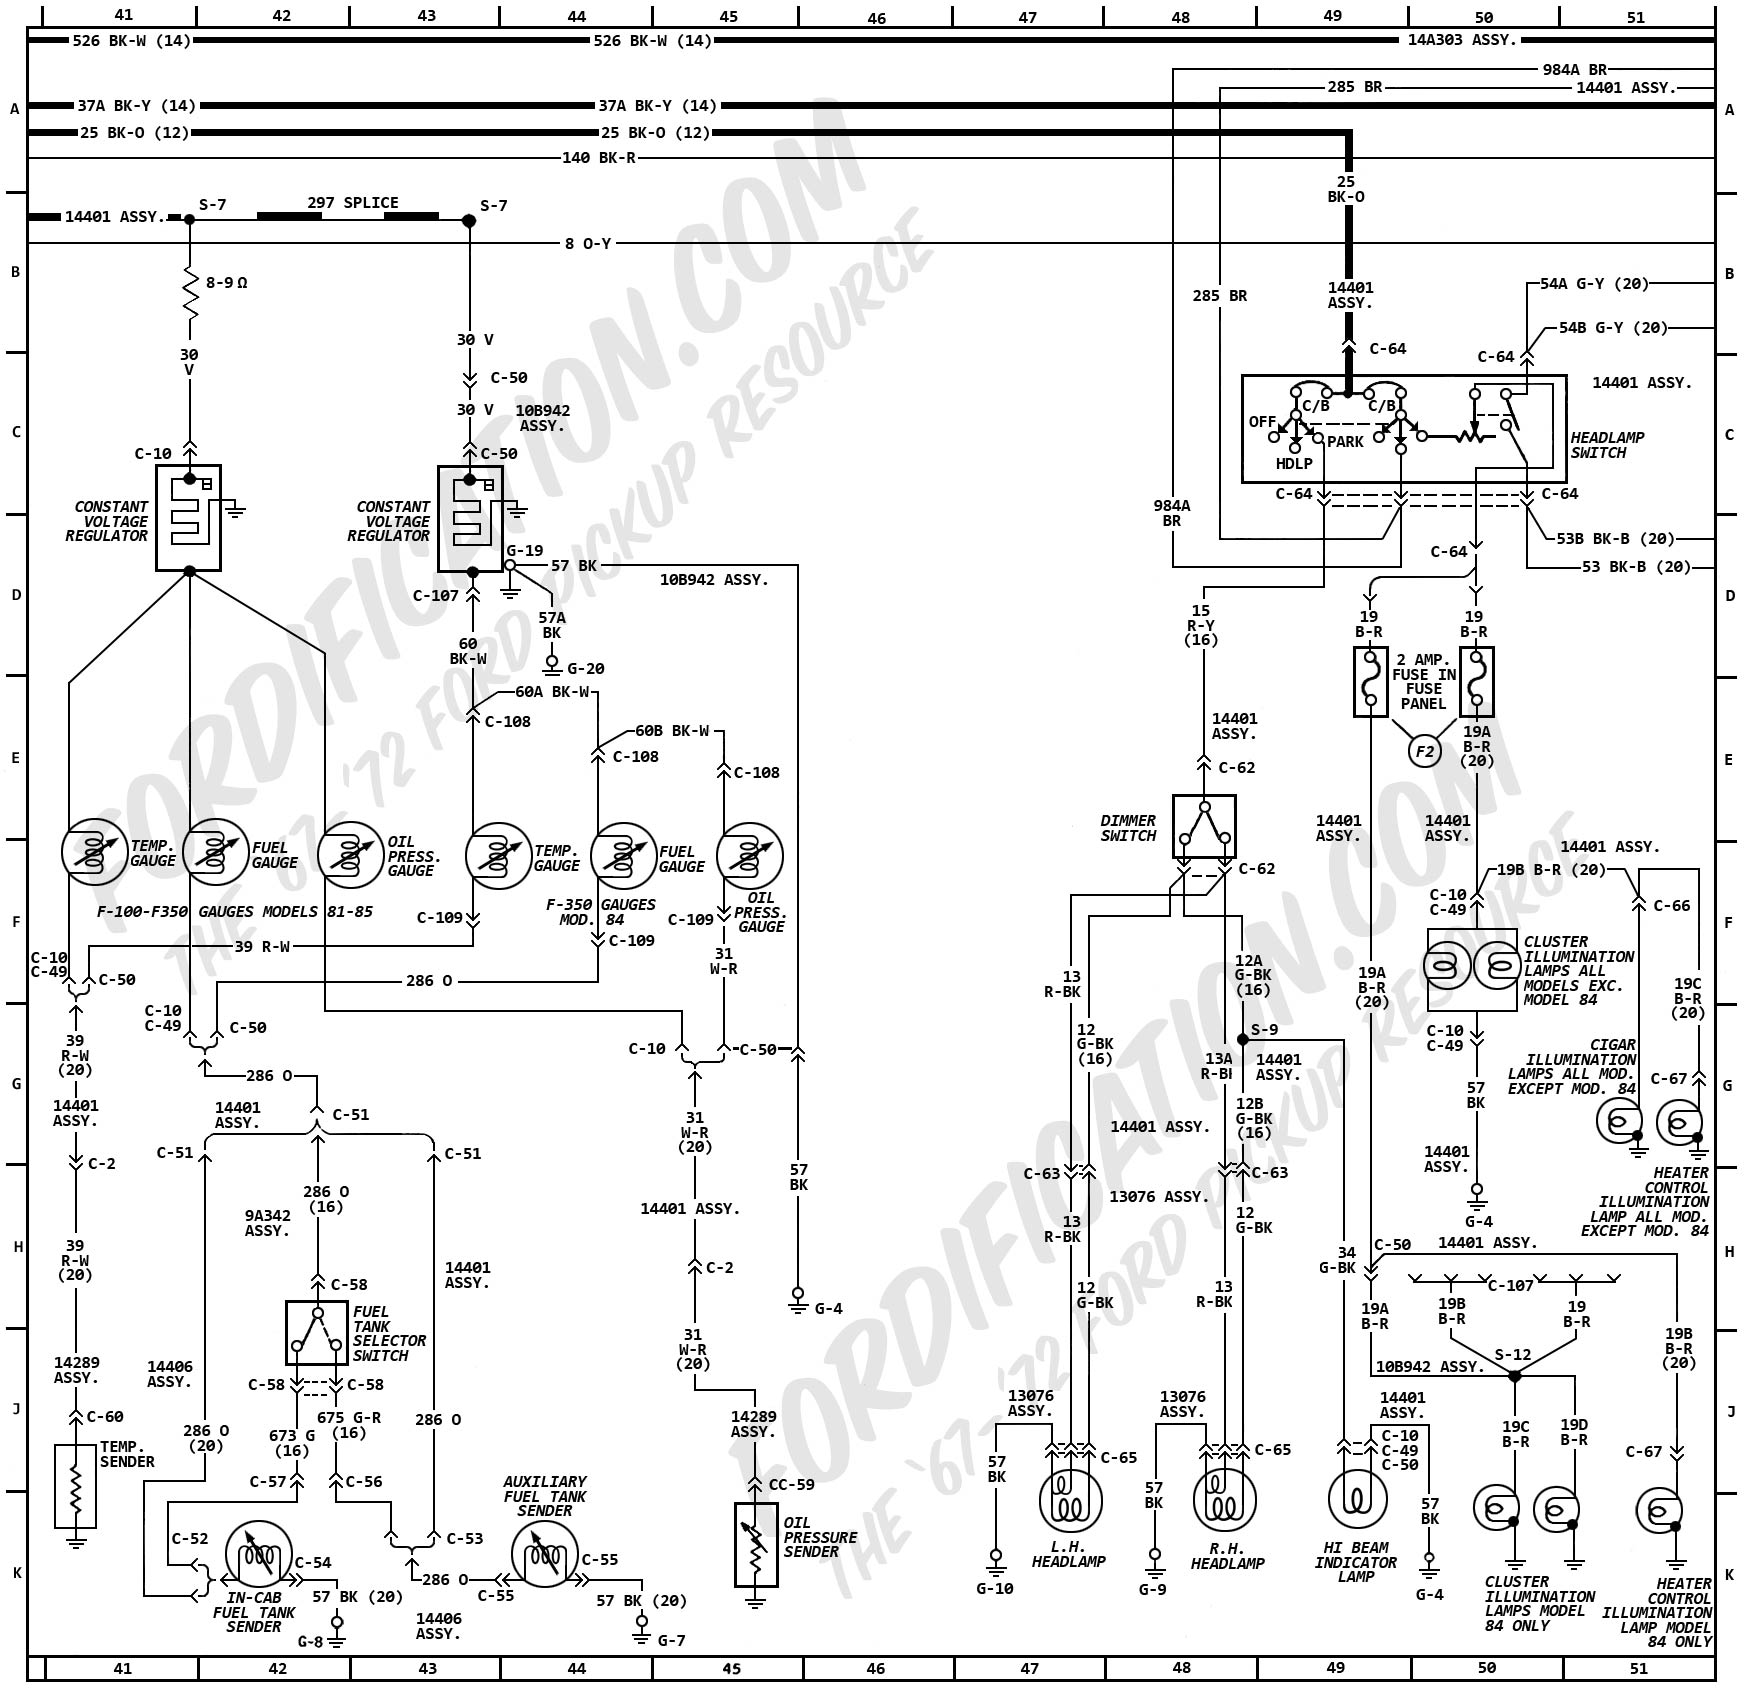 1992 Ford L8000 Wiring Diagram Wiring Circuit \u2022 1970 Ford Maverick Wiring  Diagram 1991 Ford F 150 Wiper Motor Wiring Diagram